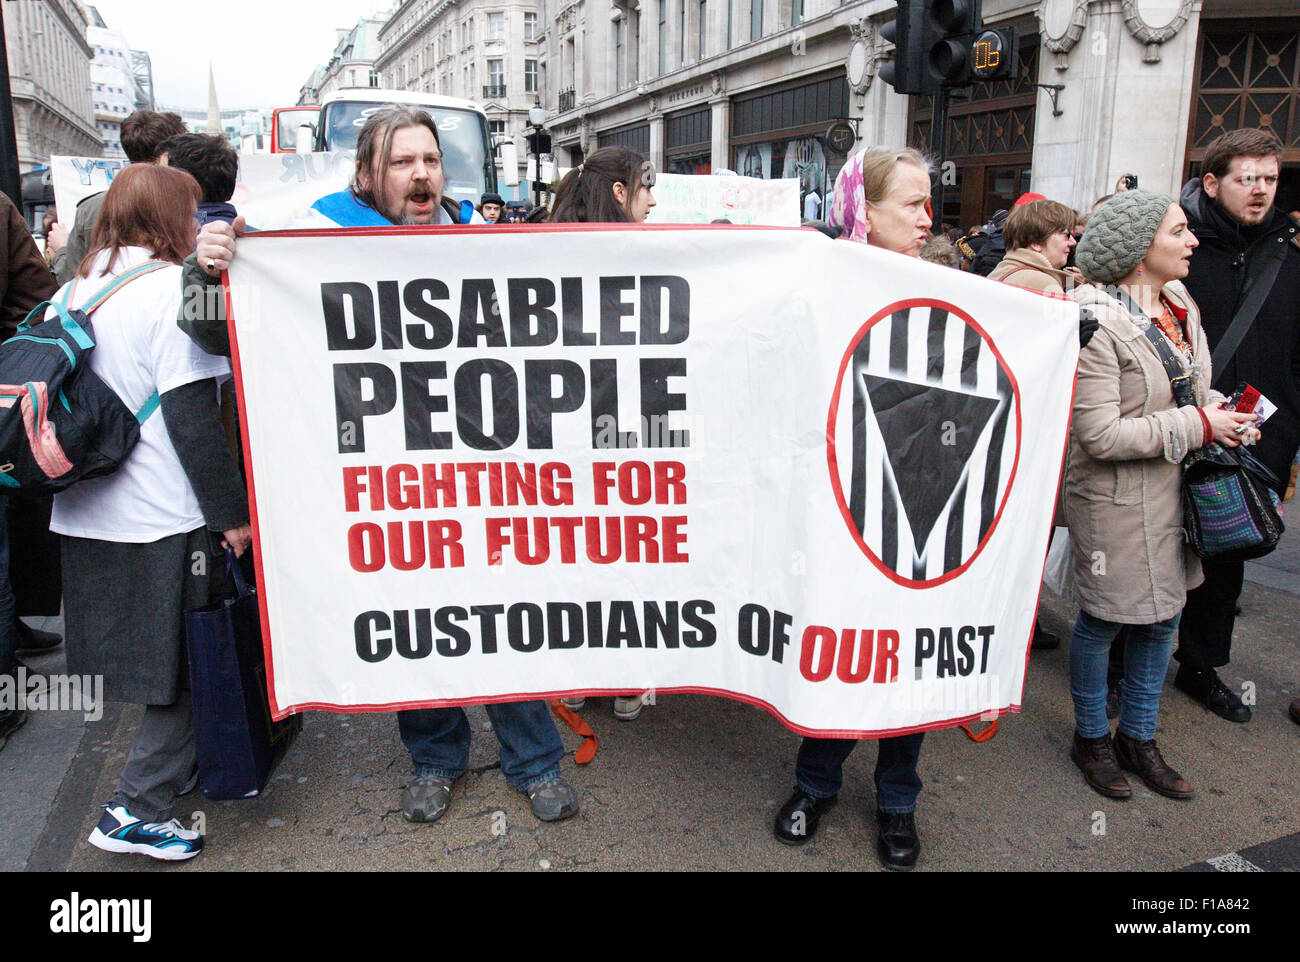 Members of Disabled People Against Cuts and UK Uncut demonstrate against government cuts and welfare reform - Stock Image